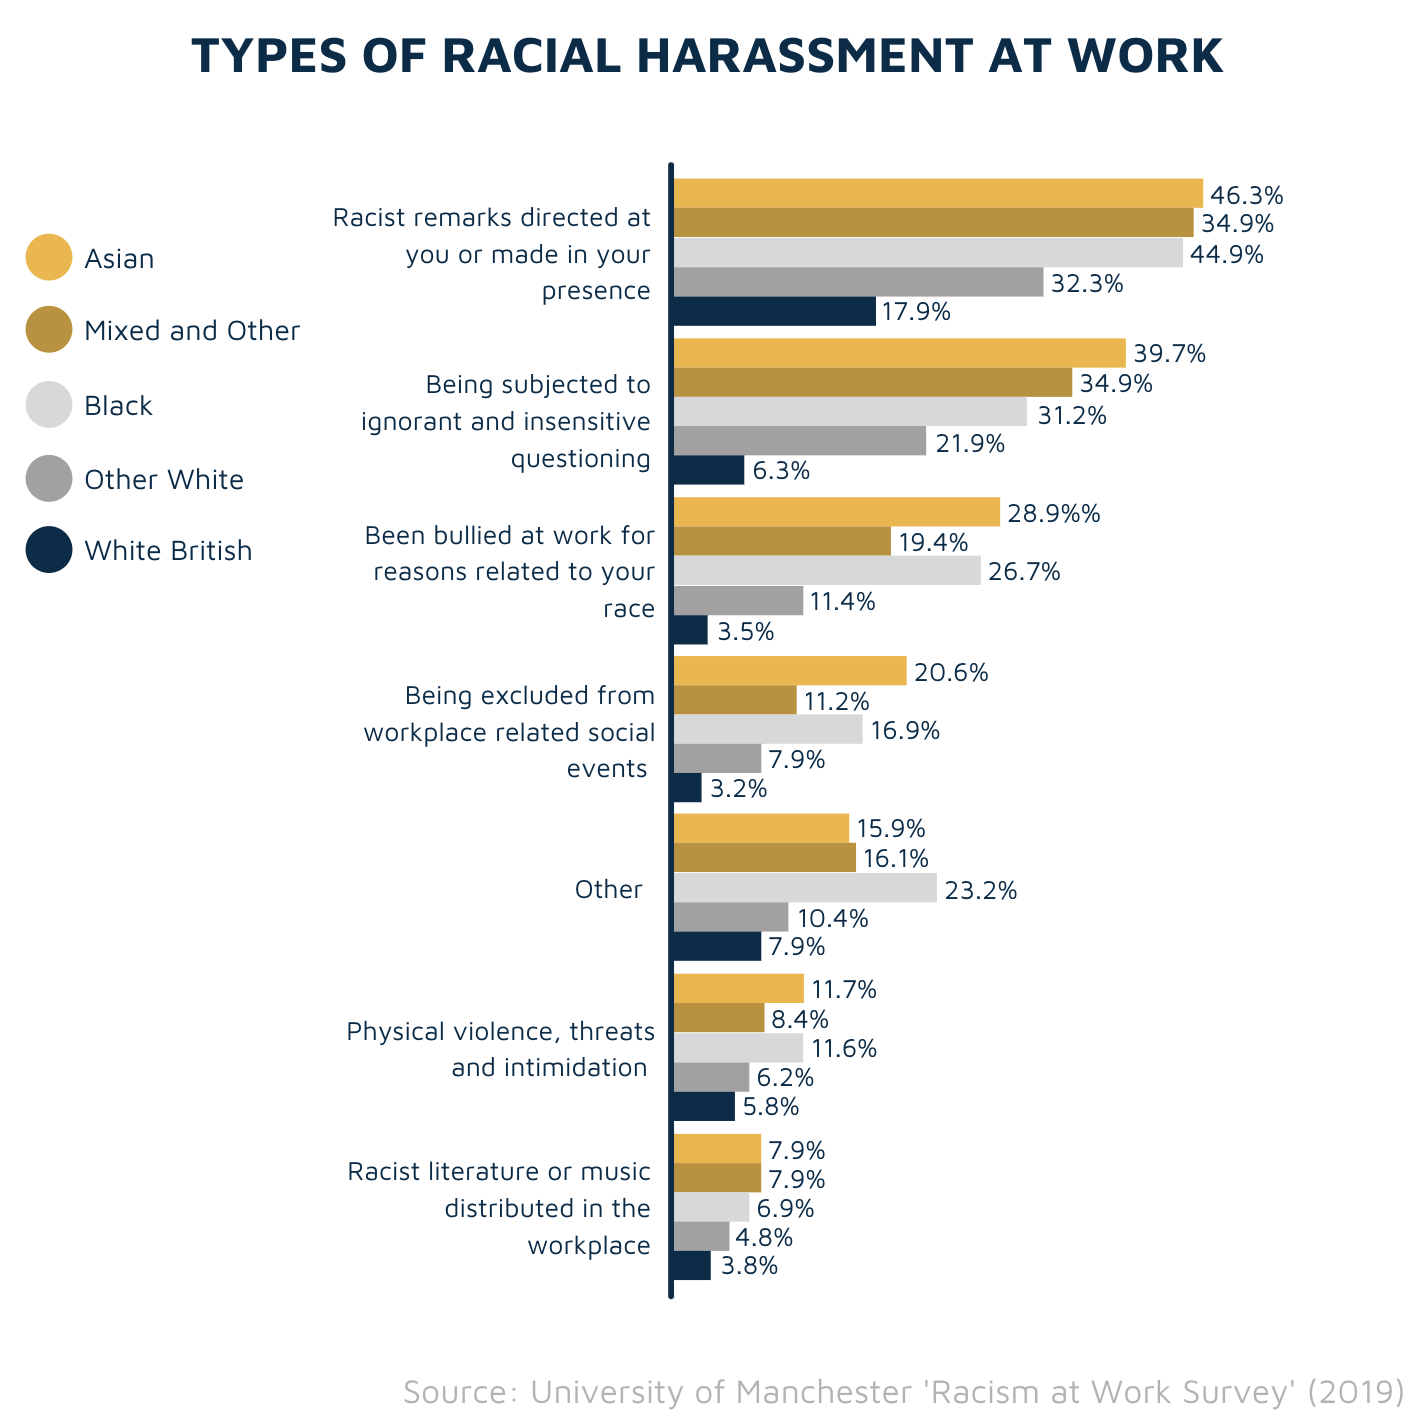 Types of racial harassment at work